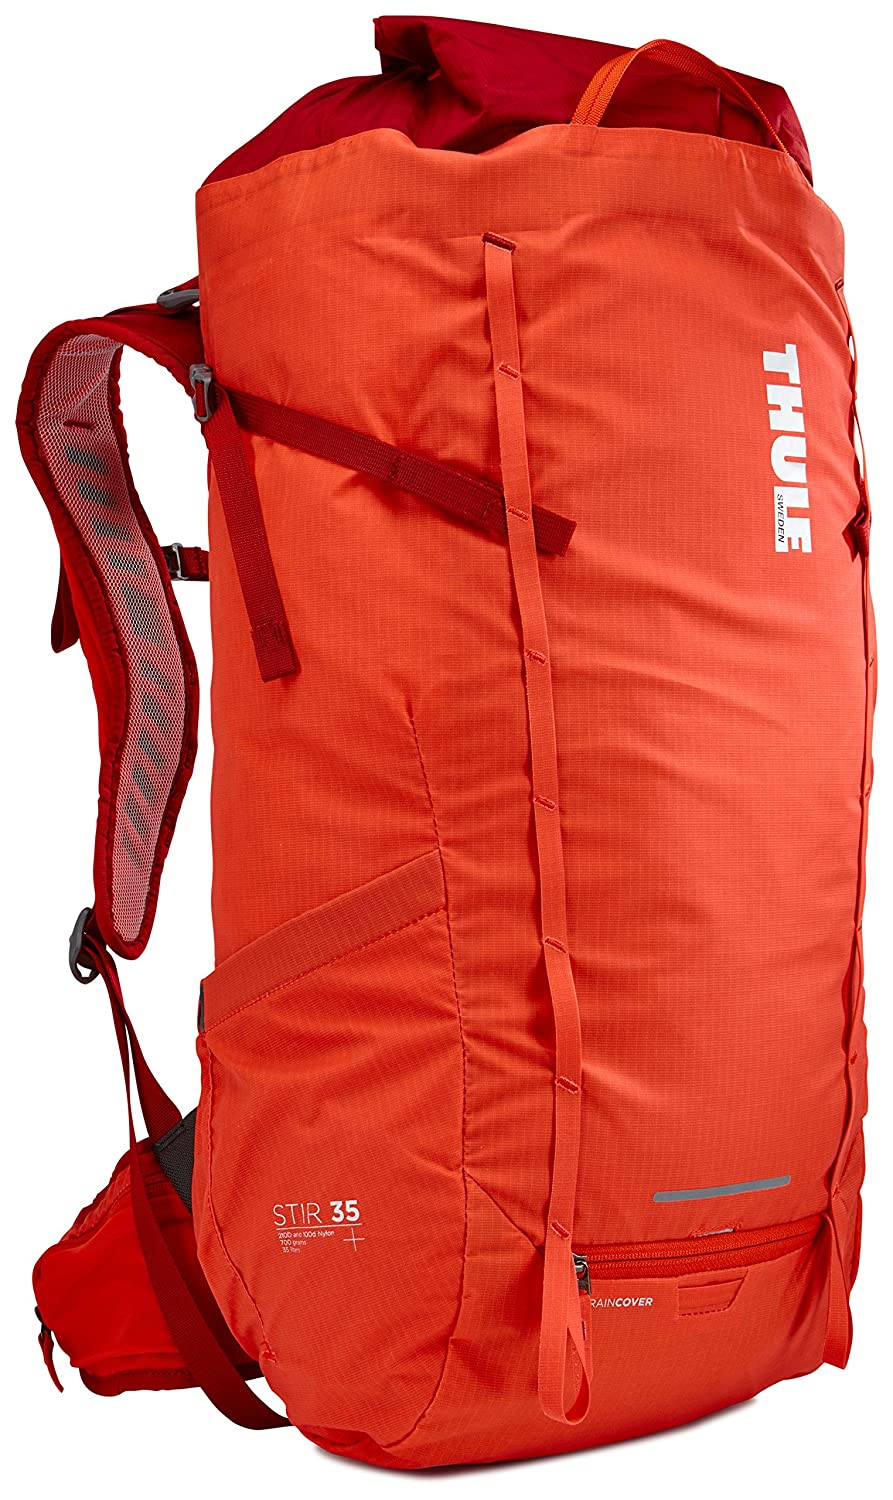 Thule Stir 35L Men's Hiking Pack – Roarange günstig